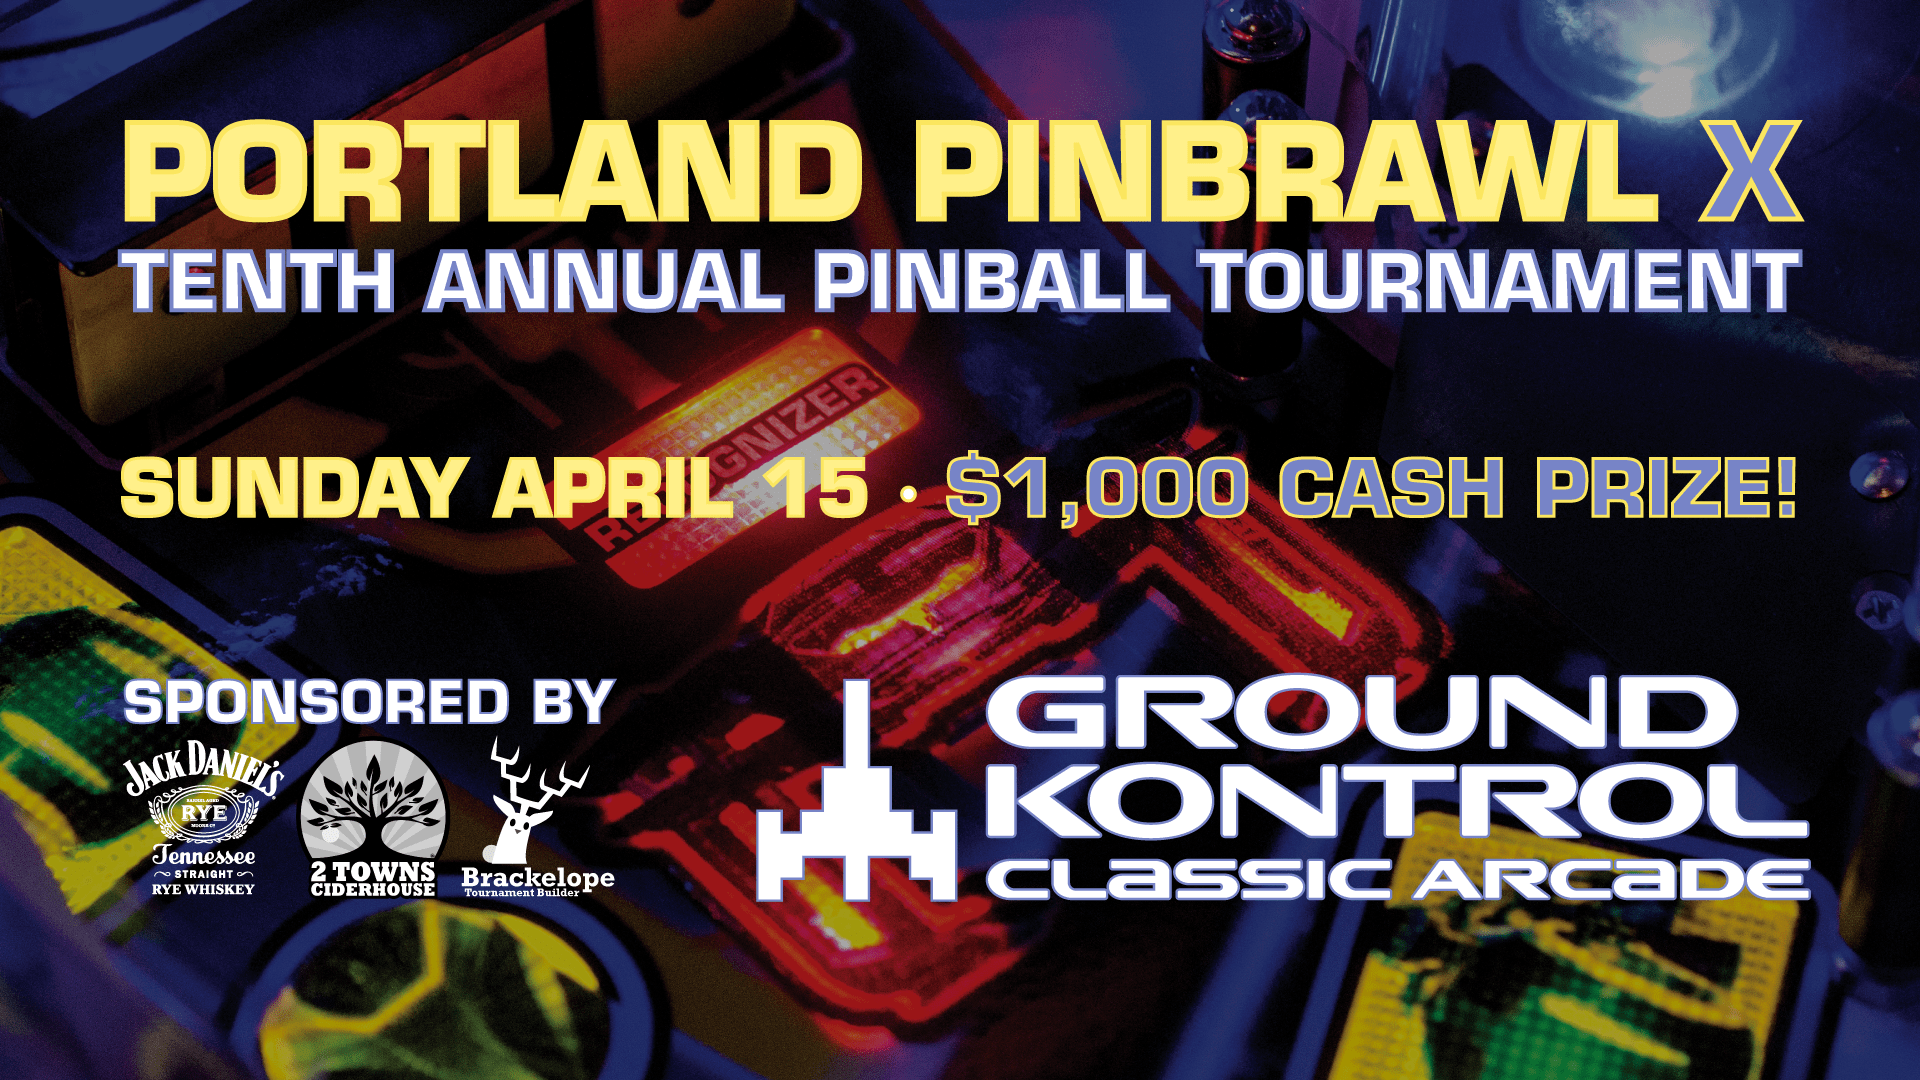 Portland Pinbrawl X – Our 10th Annual Pinball Tournament – Sunday 4/15